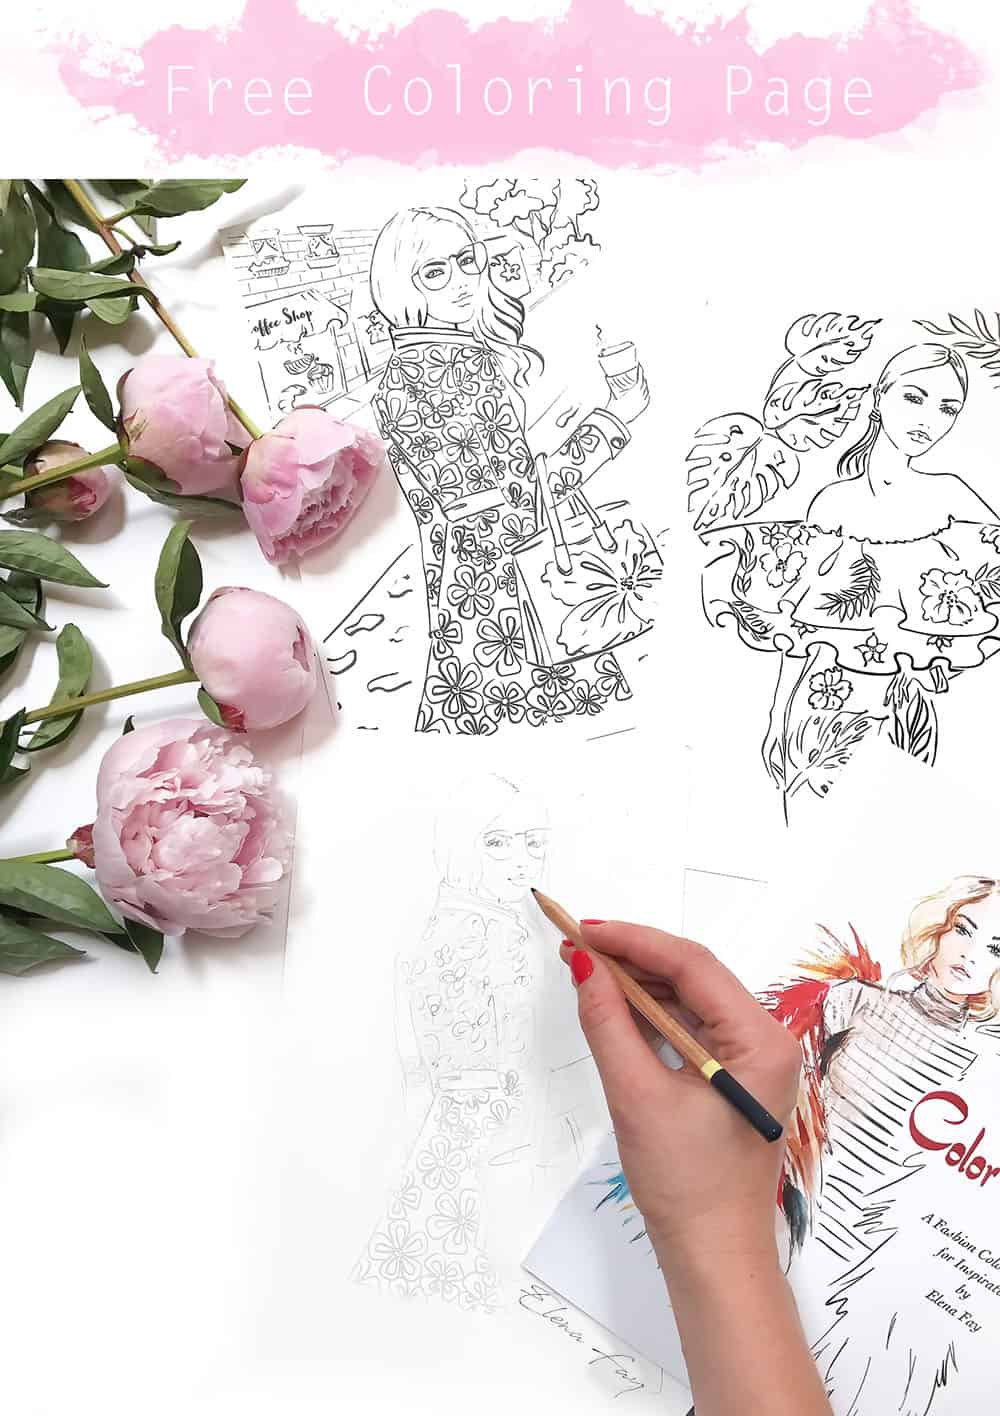 free coloring page, fashion coloring page